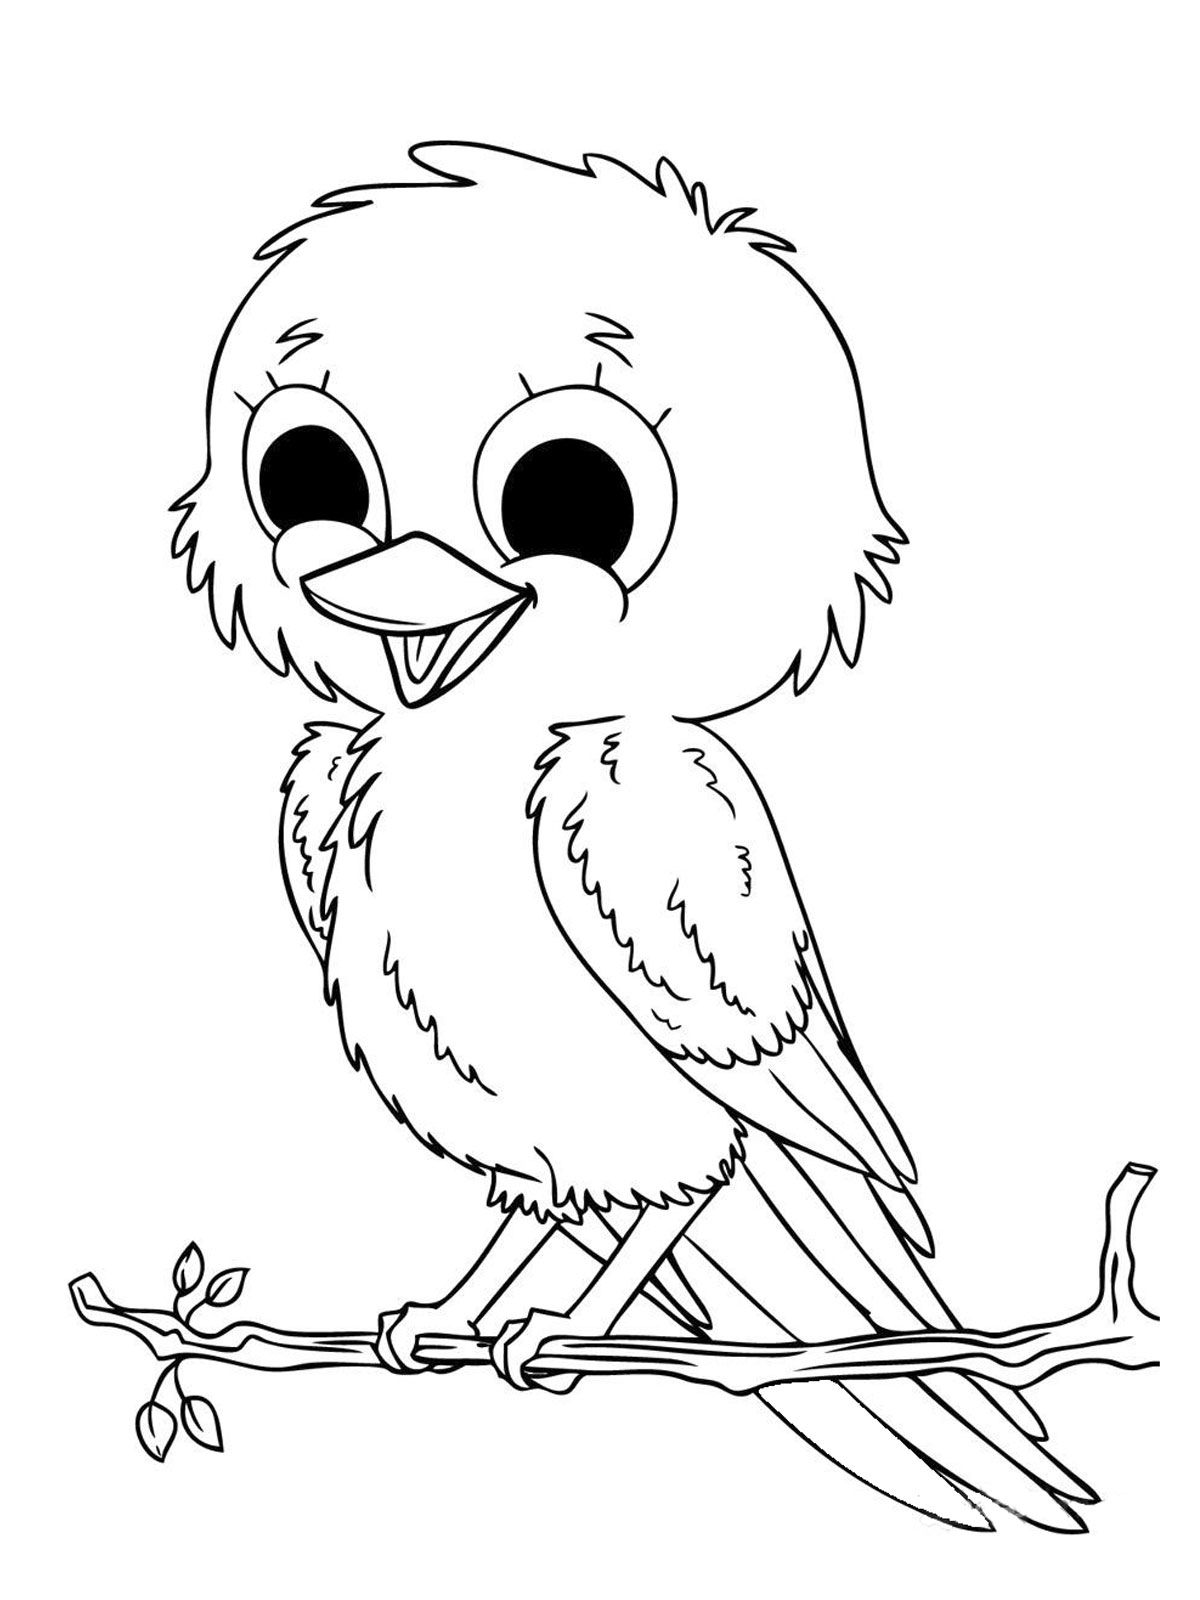 coloringpages Download all baby animals coloring pages